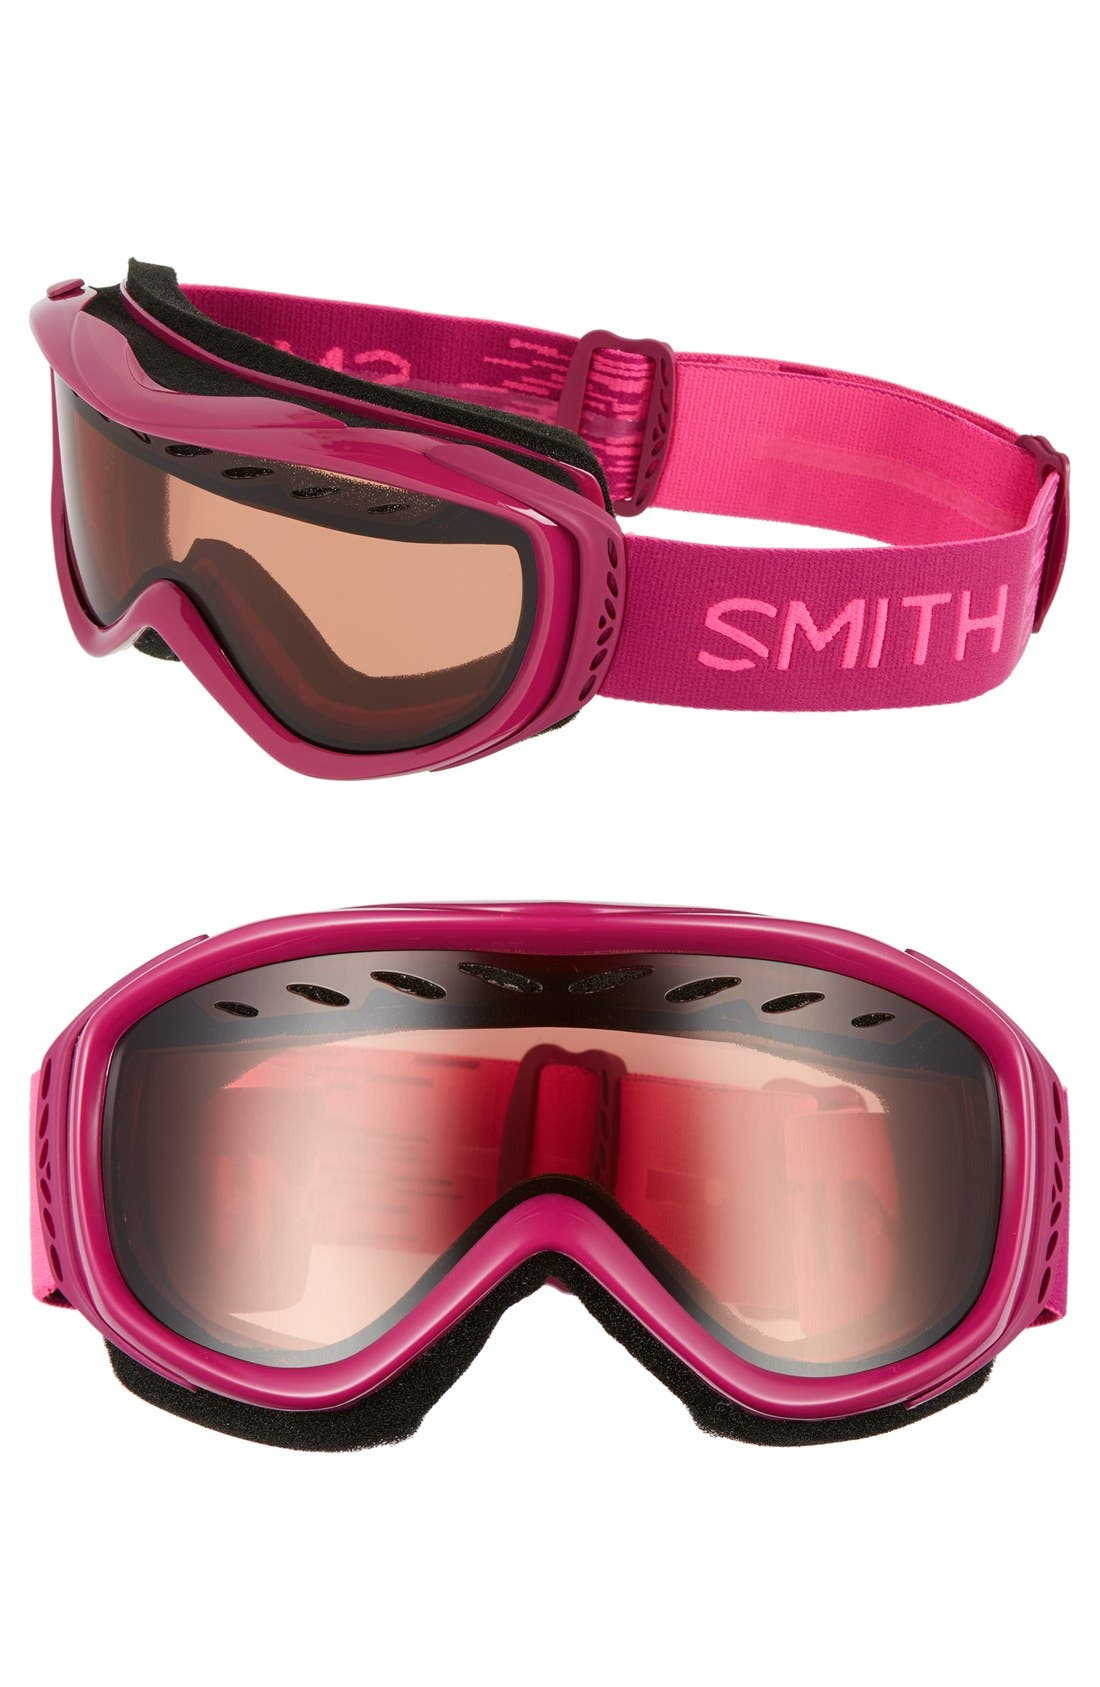 Smith 'Transit' Snow Goggles